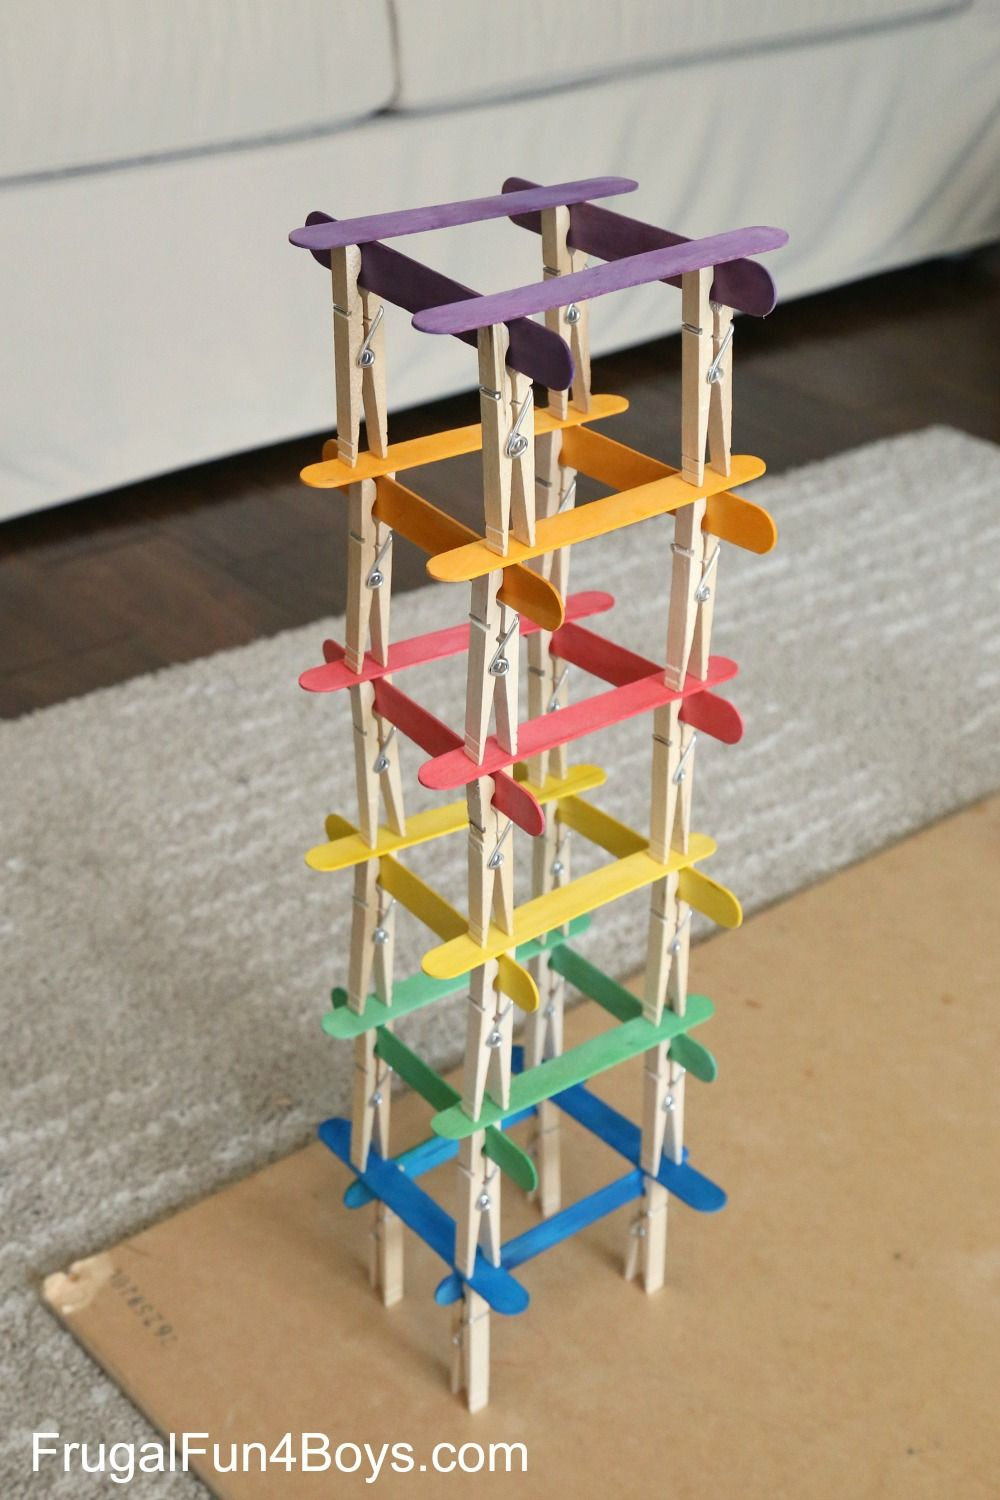 5 engineering challenges with clothespins binder clips for Ideas for building with popsicle sticks